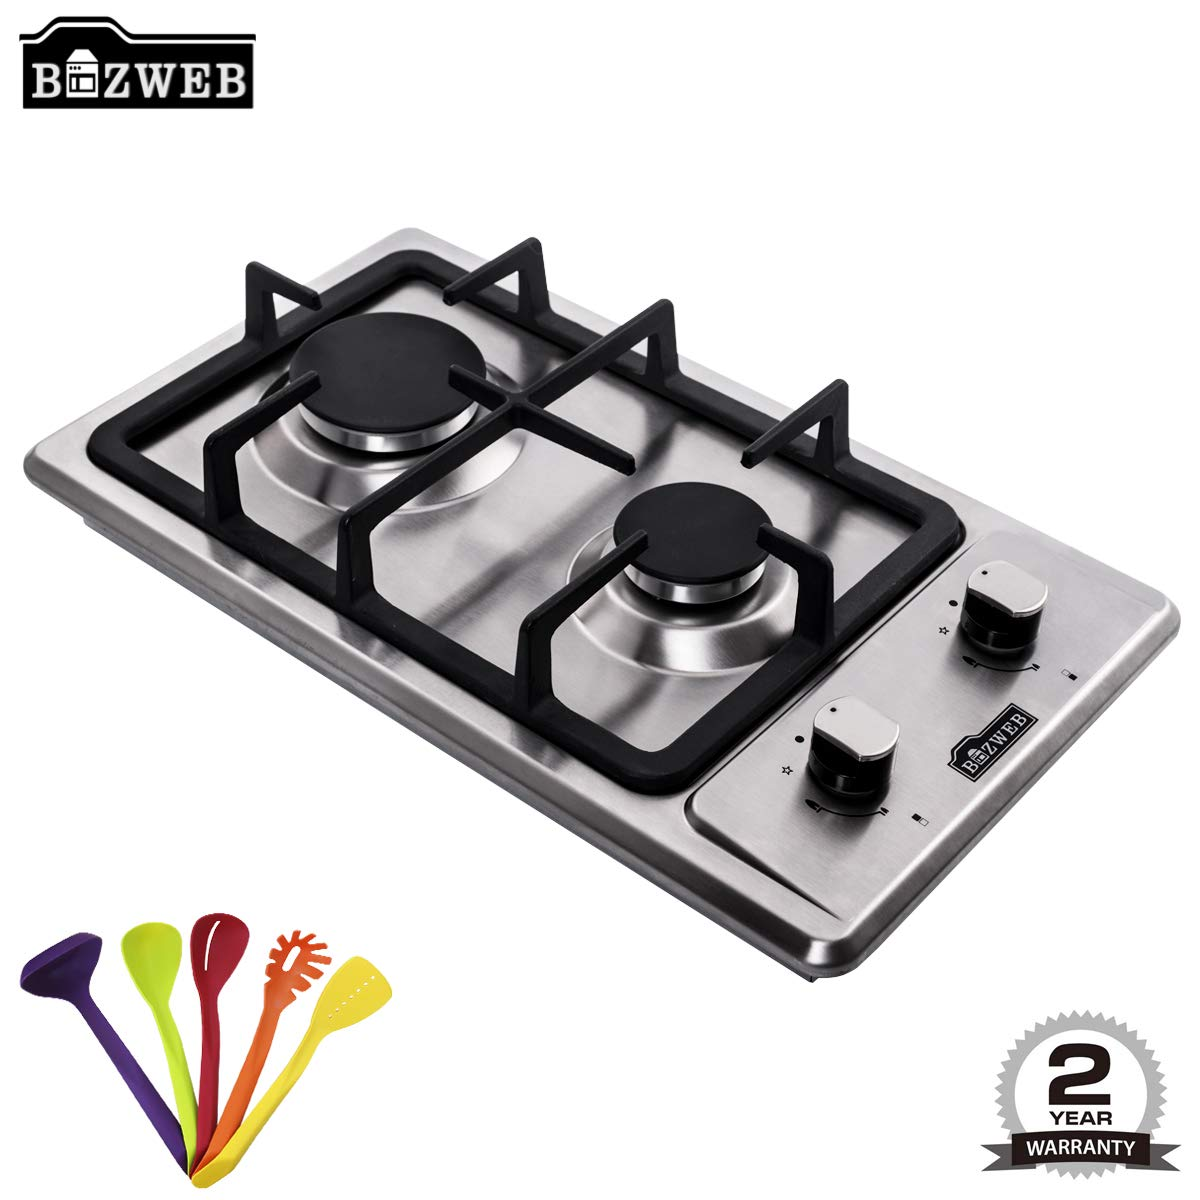 B-ZWEB [GIFT] Domino 30CM Built-in 2 Burners Gas Hob/Cooker/Cooktop in Stainless Steel with LPG Kit/Cast Iron/FFD